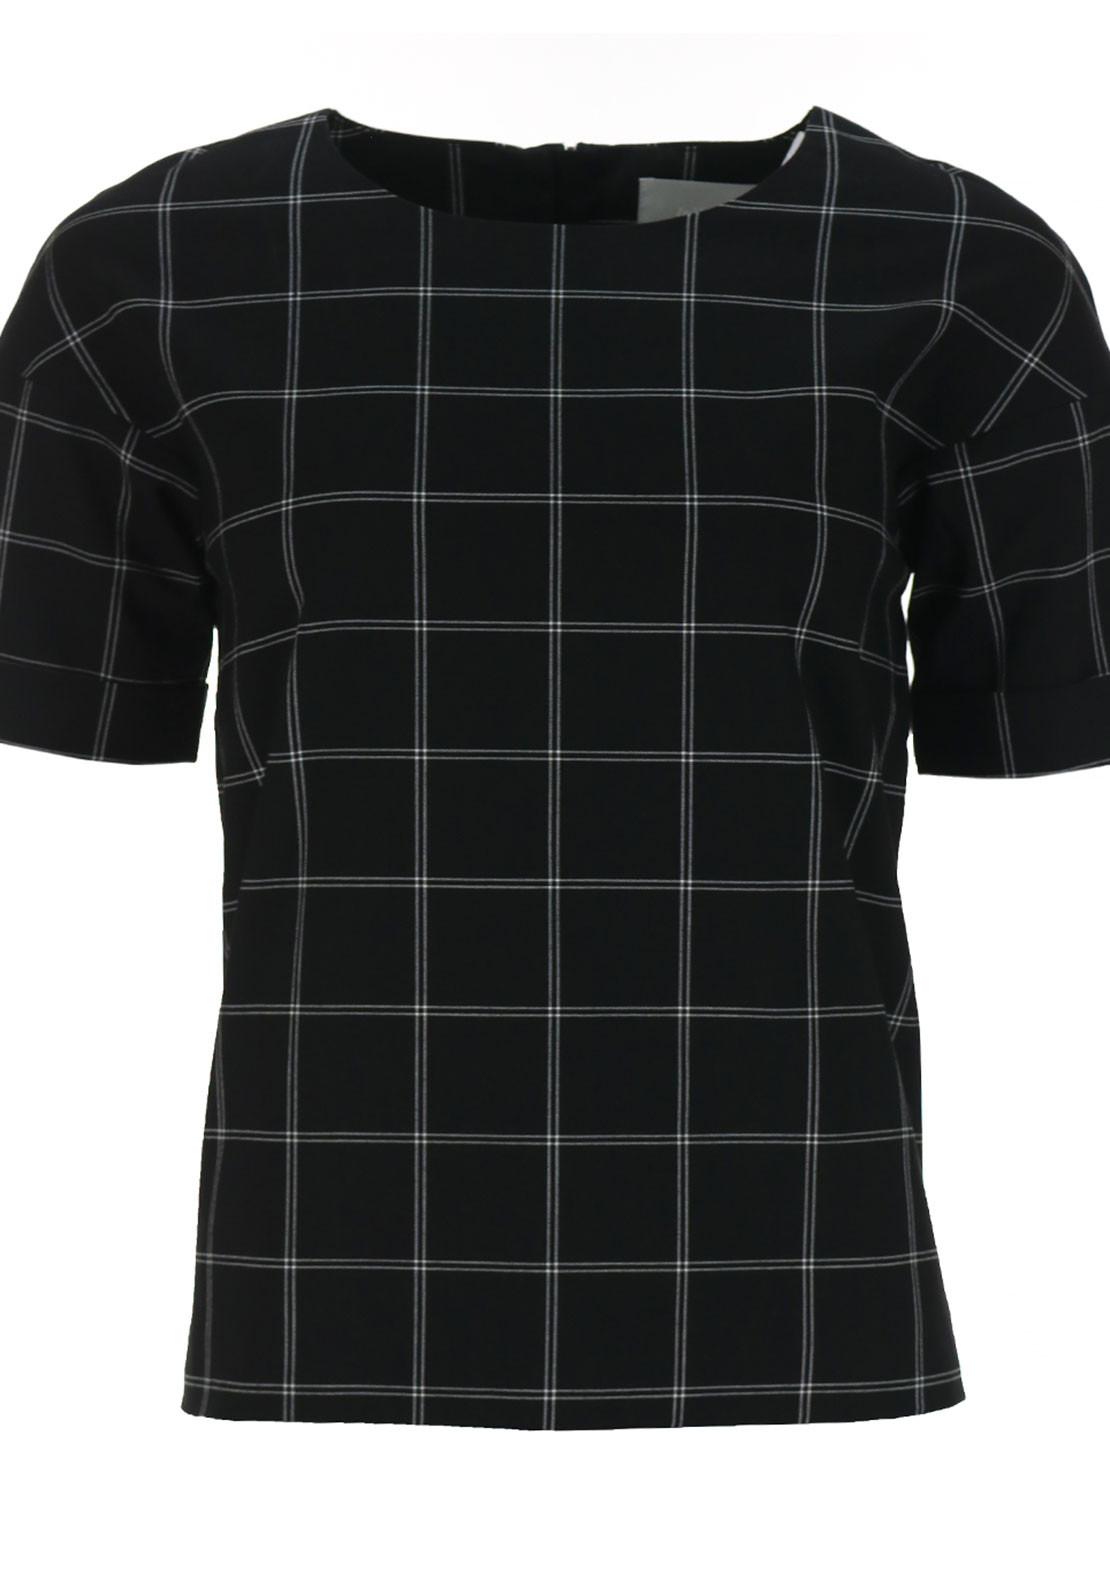 Inwear Check Print Blouse, Black and White